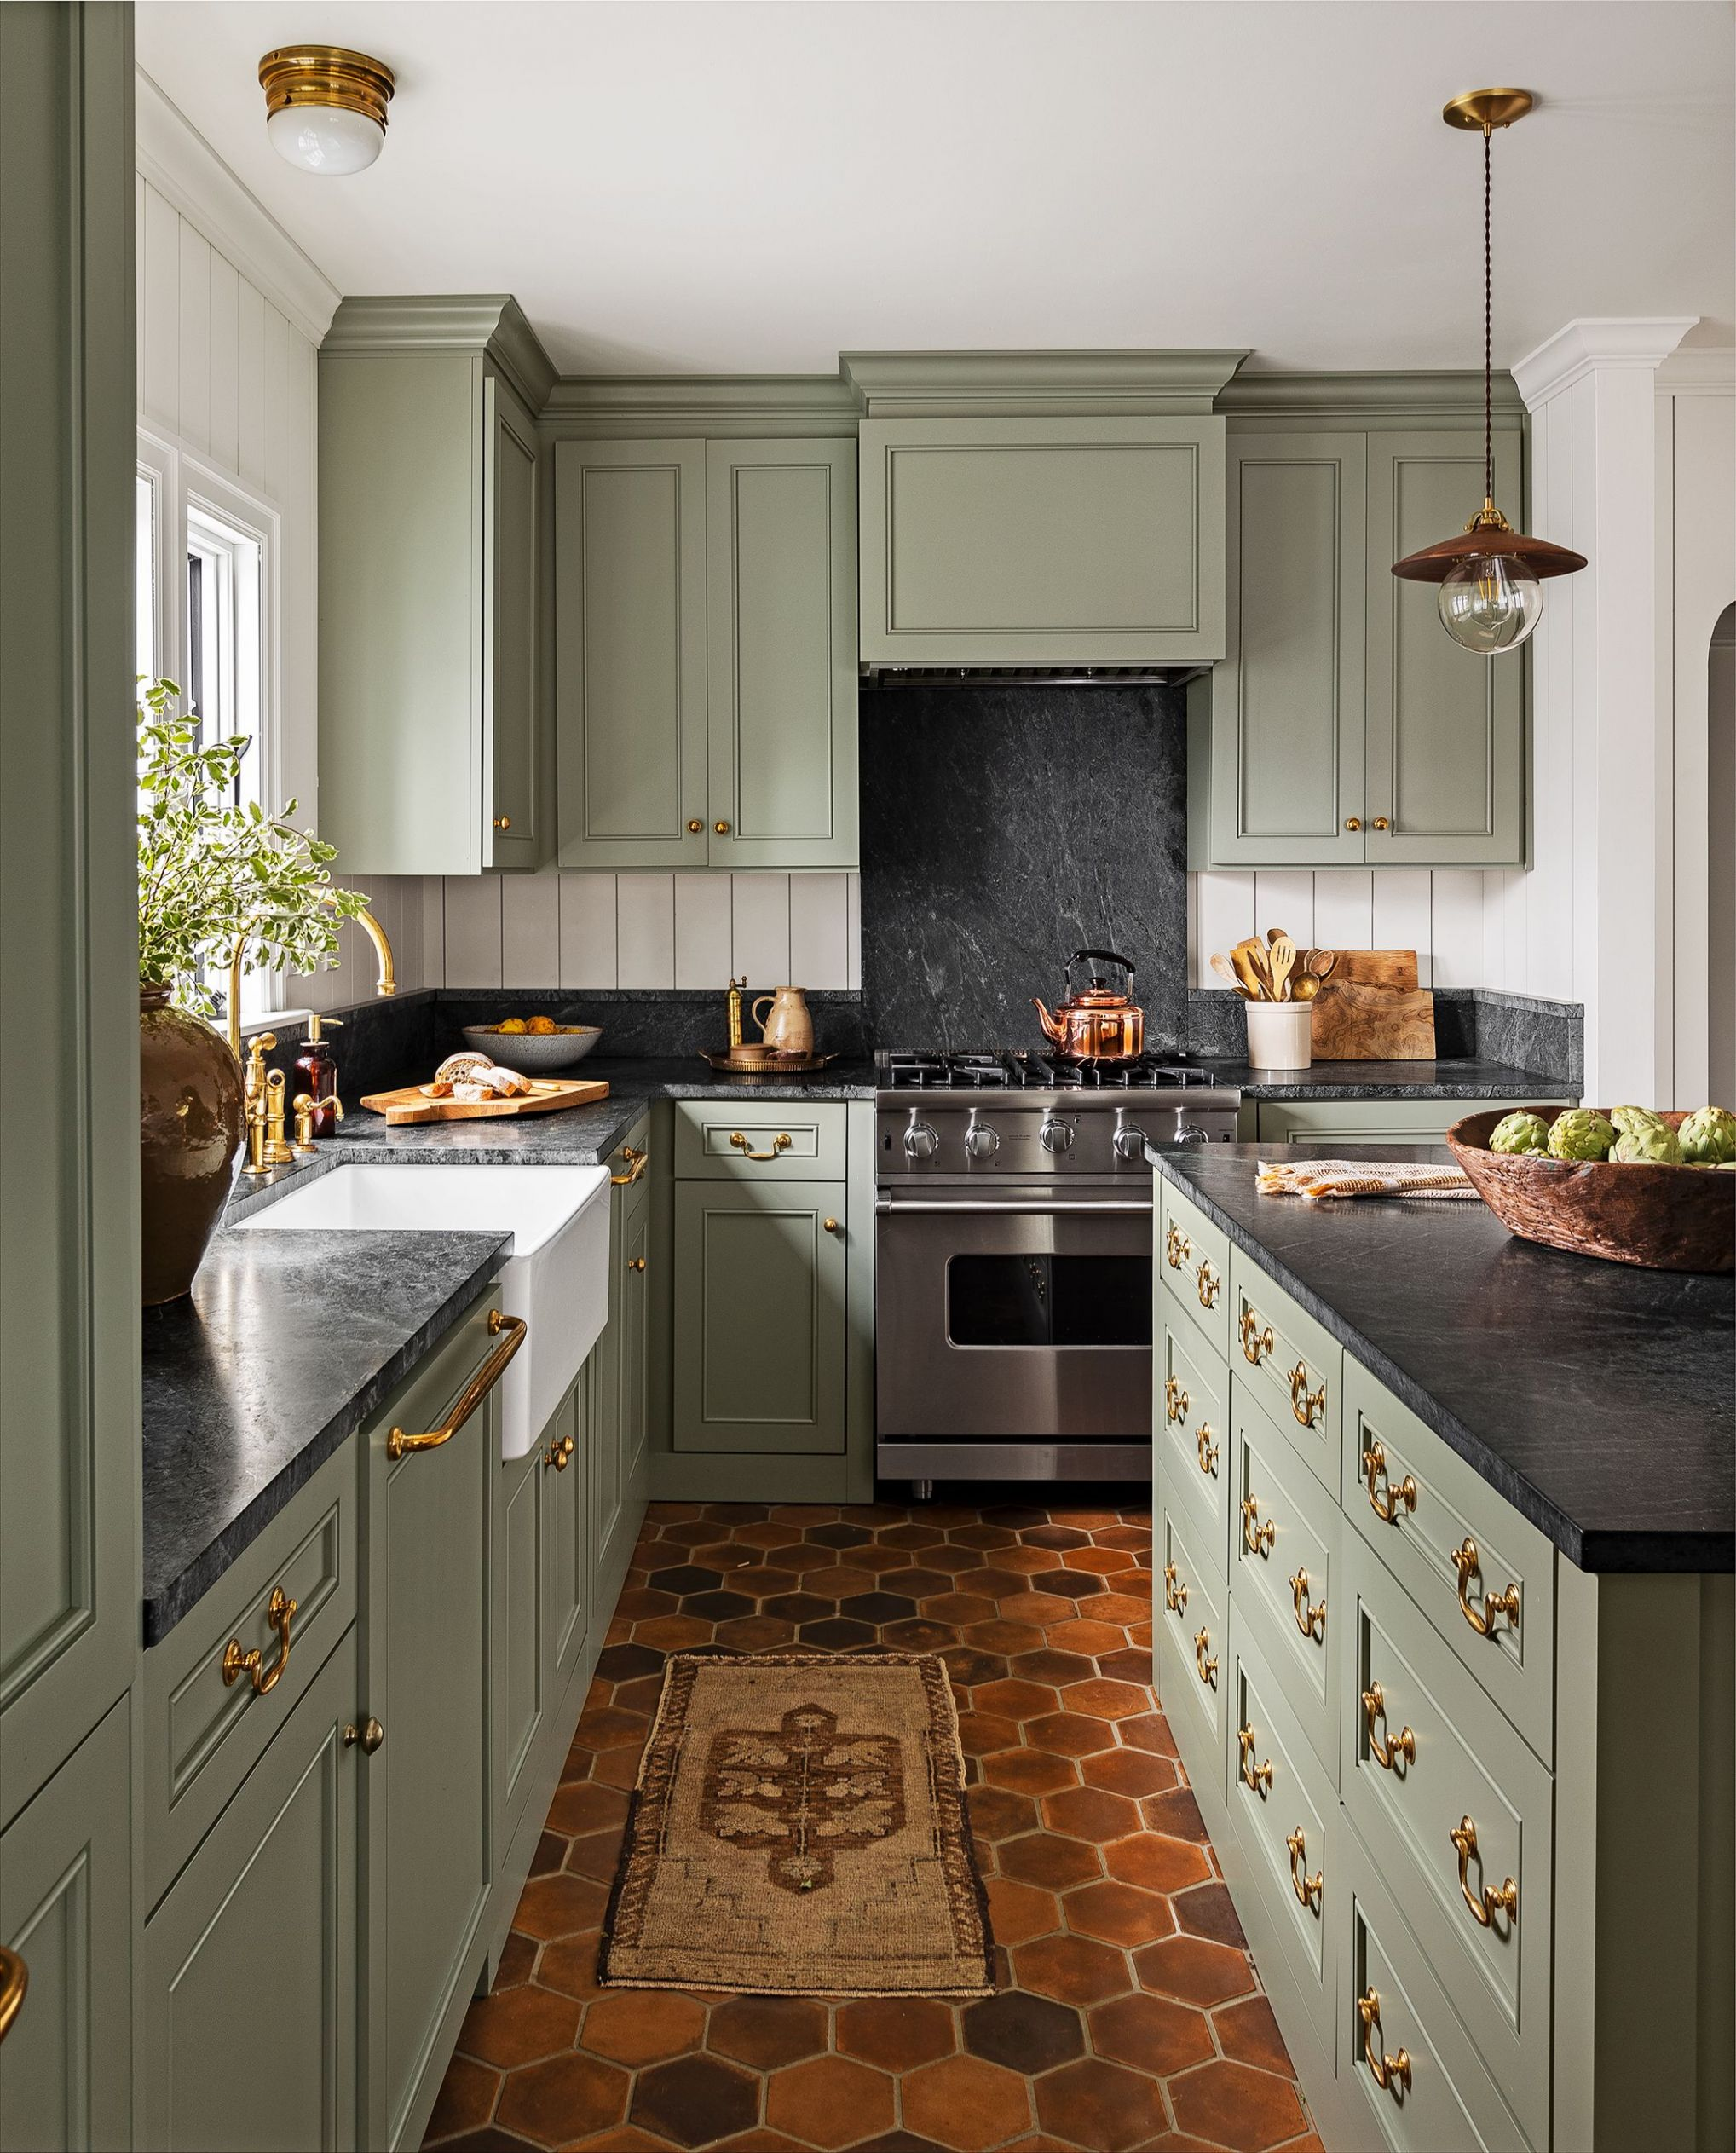 10 Best Green Kitchen Cabinet Ideas - Top Green Paint Colors for ..